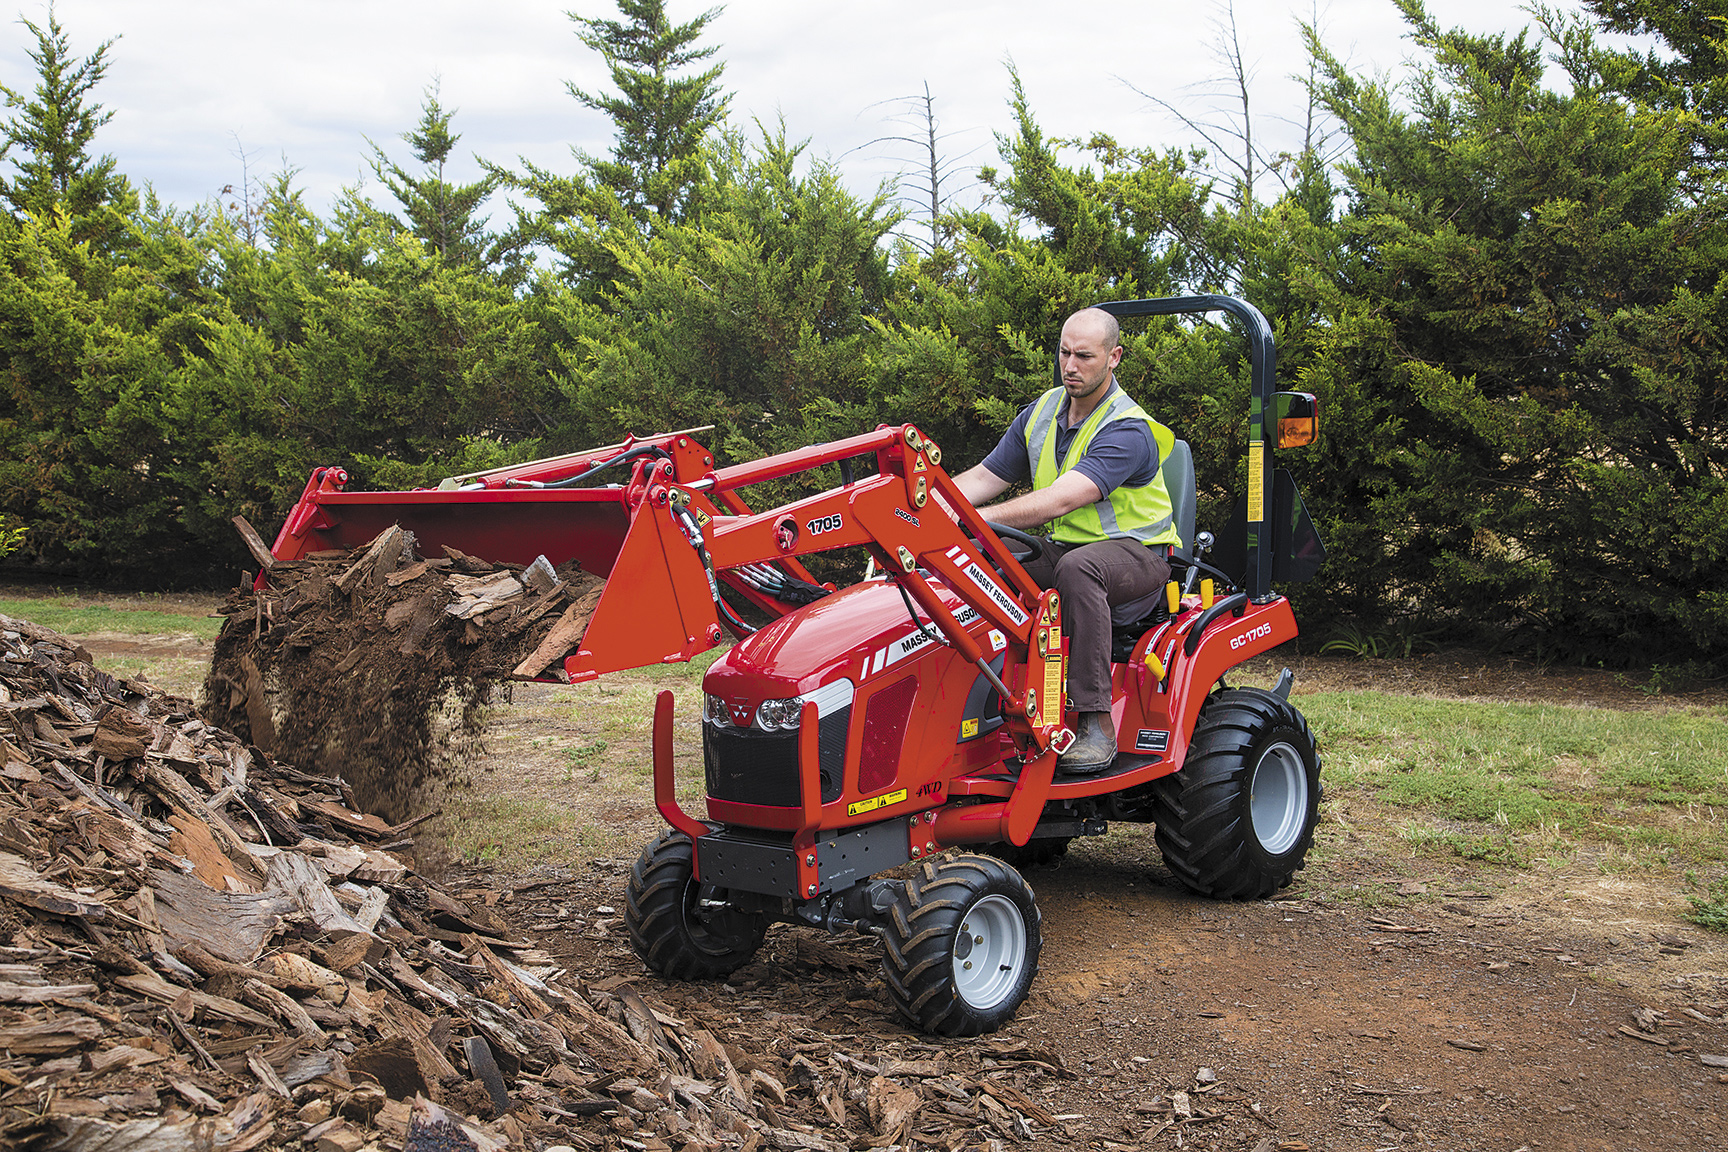 GC1700 compact tractor with loader